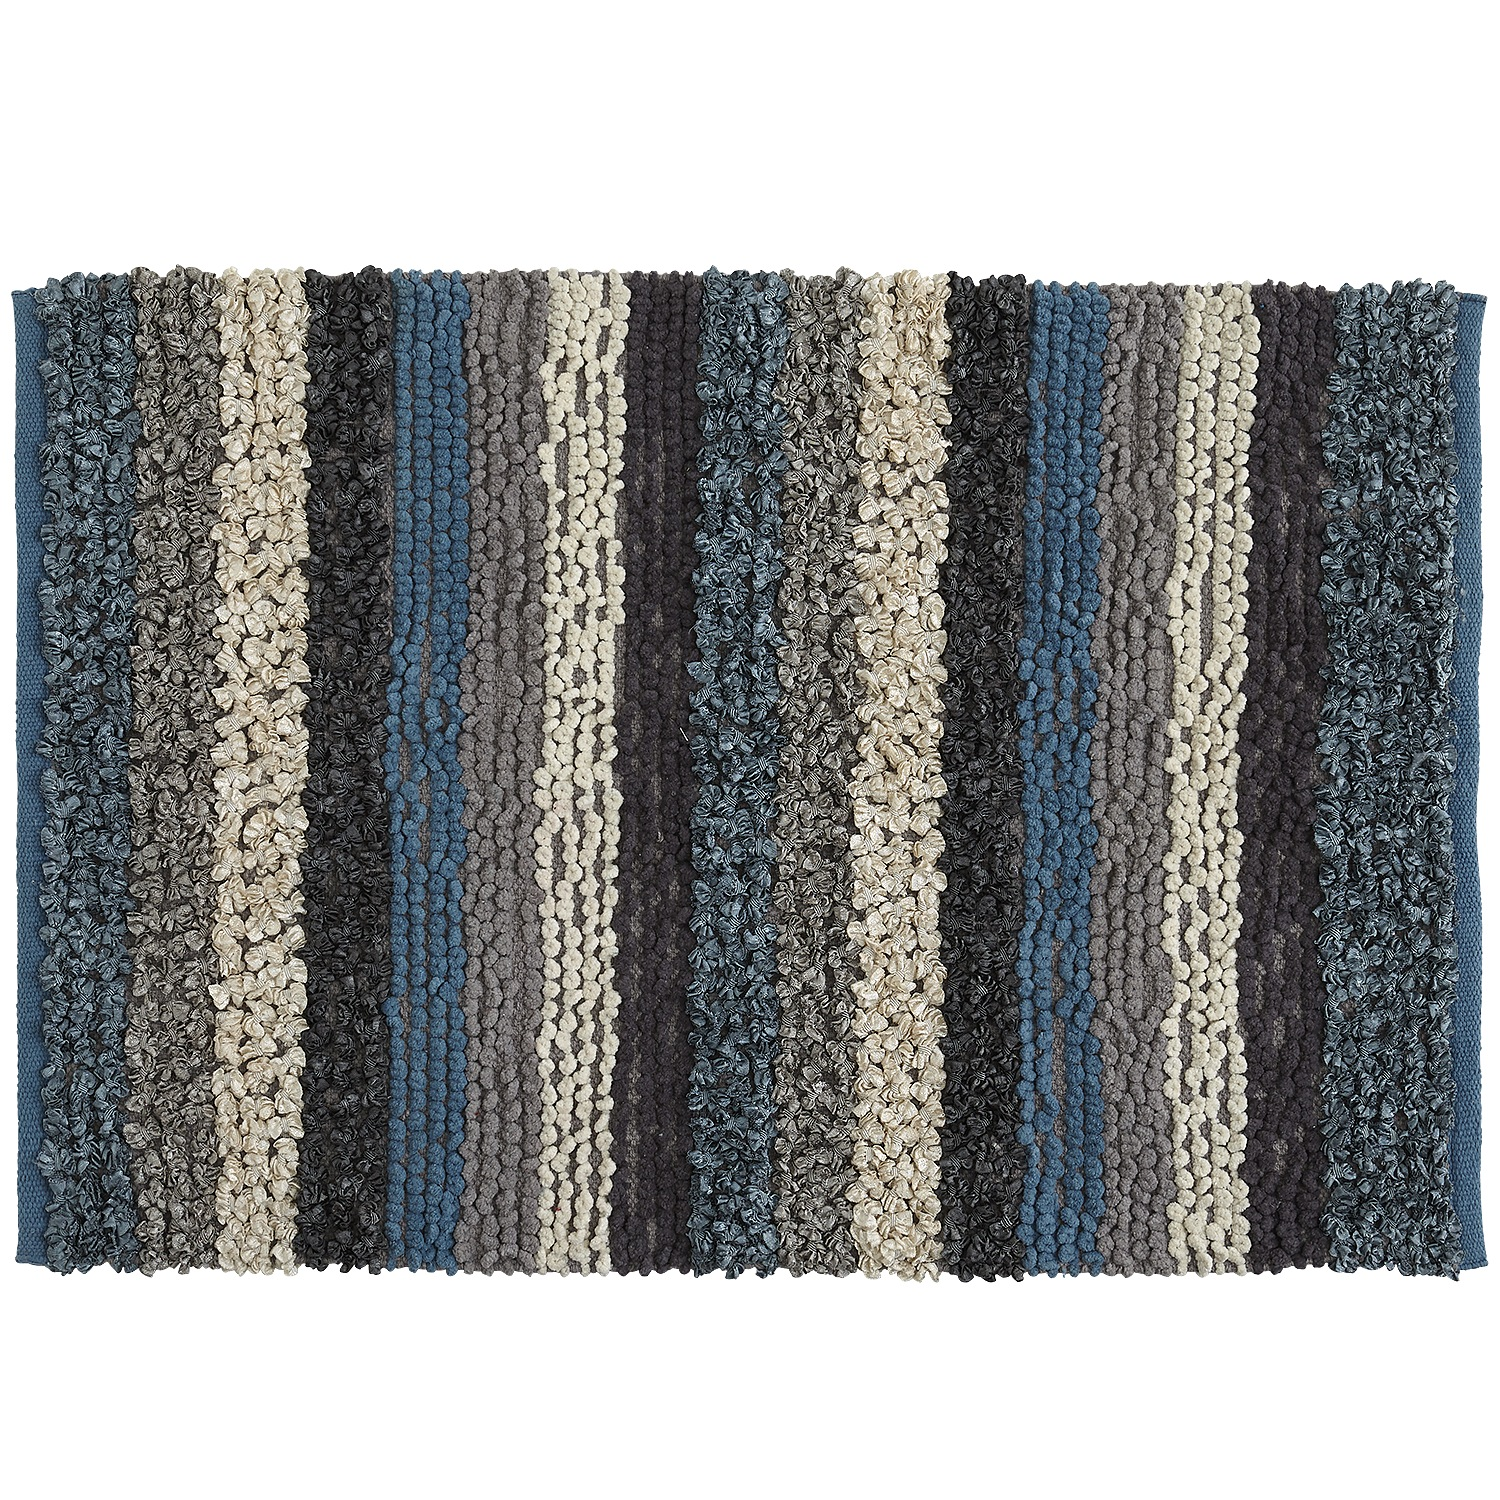 Ribbon Rug - 2x3 Coastal Blue